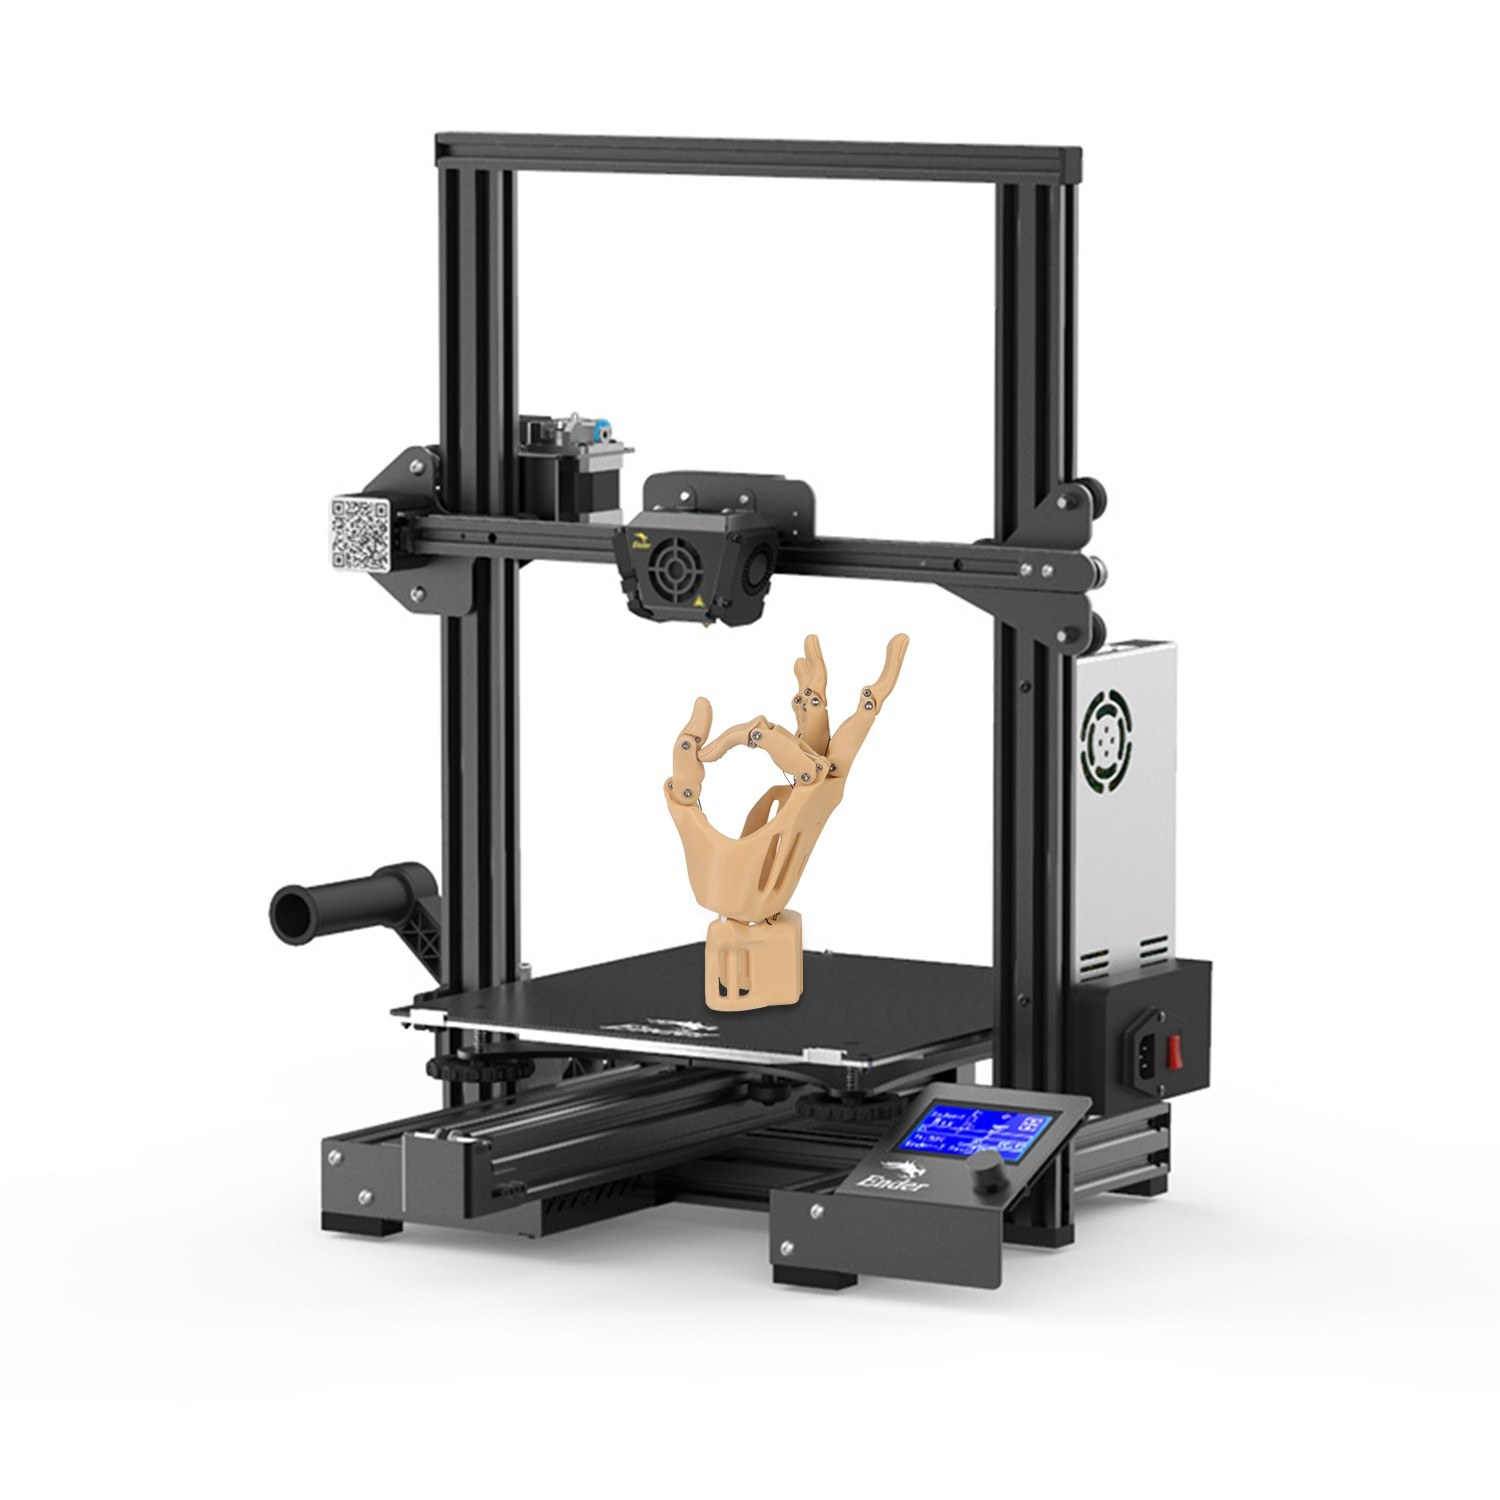 Tomtop - $70 OFF Creality Ender-3 Max 3D Printer Kit with High Precision, EU Warehouse $259.99